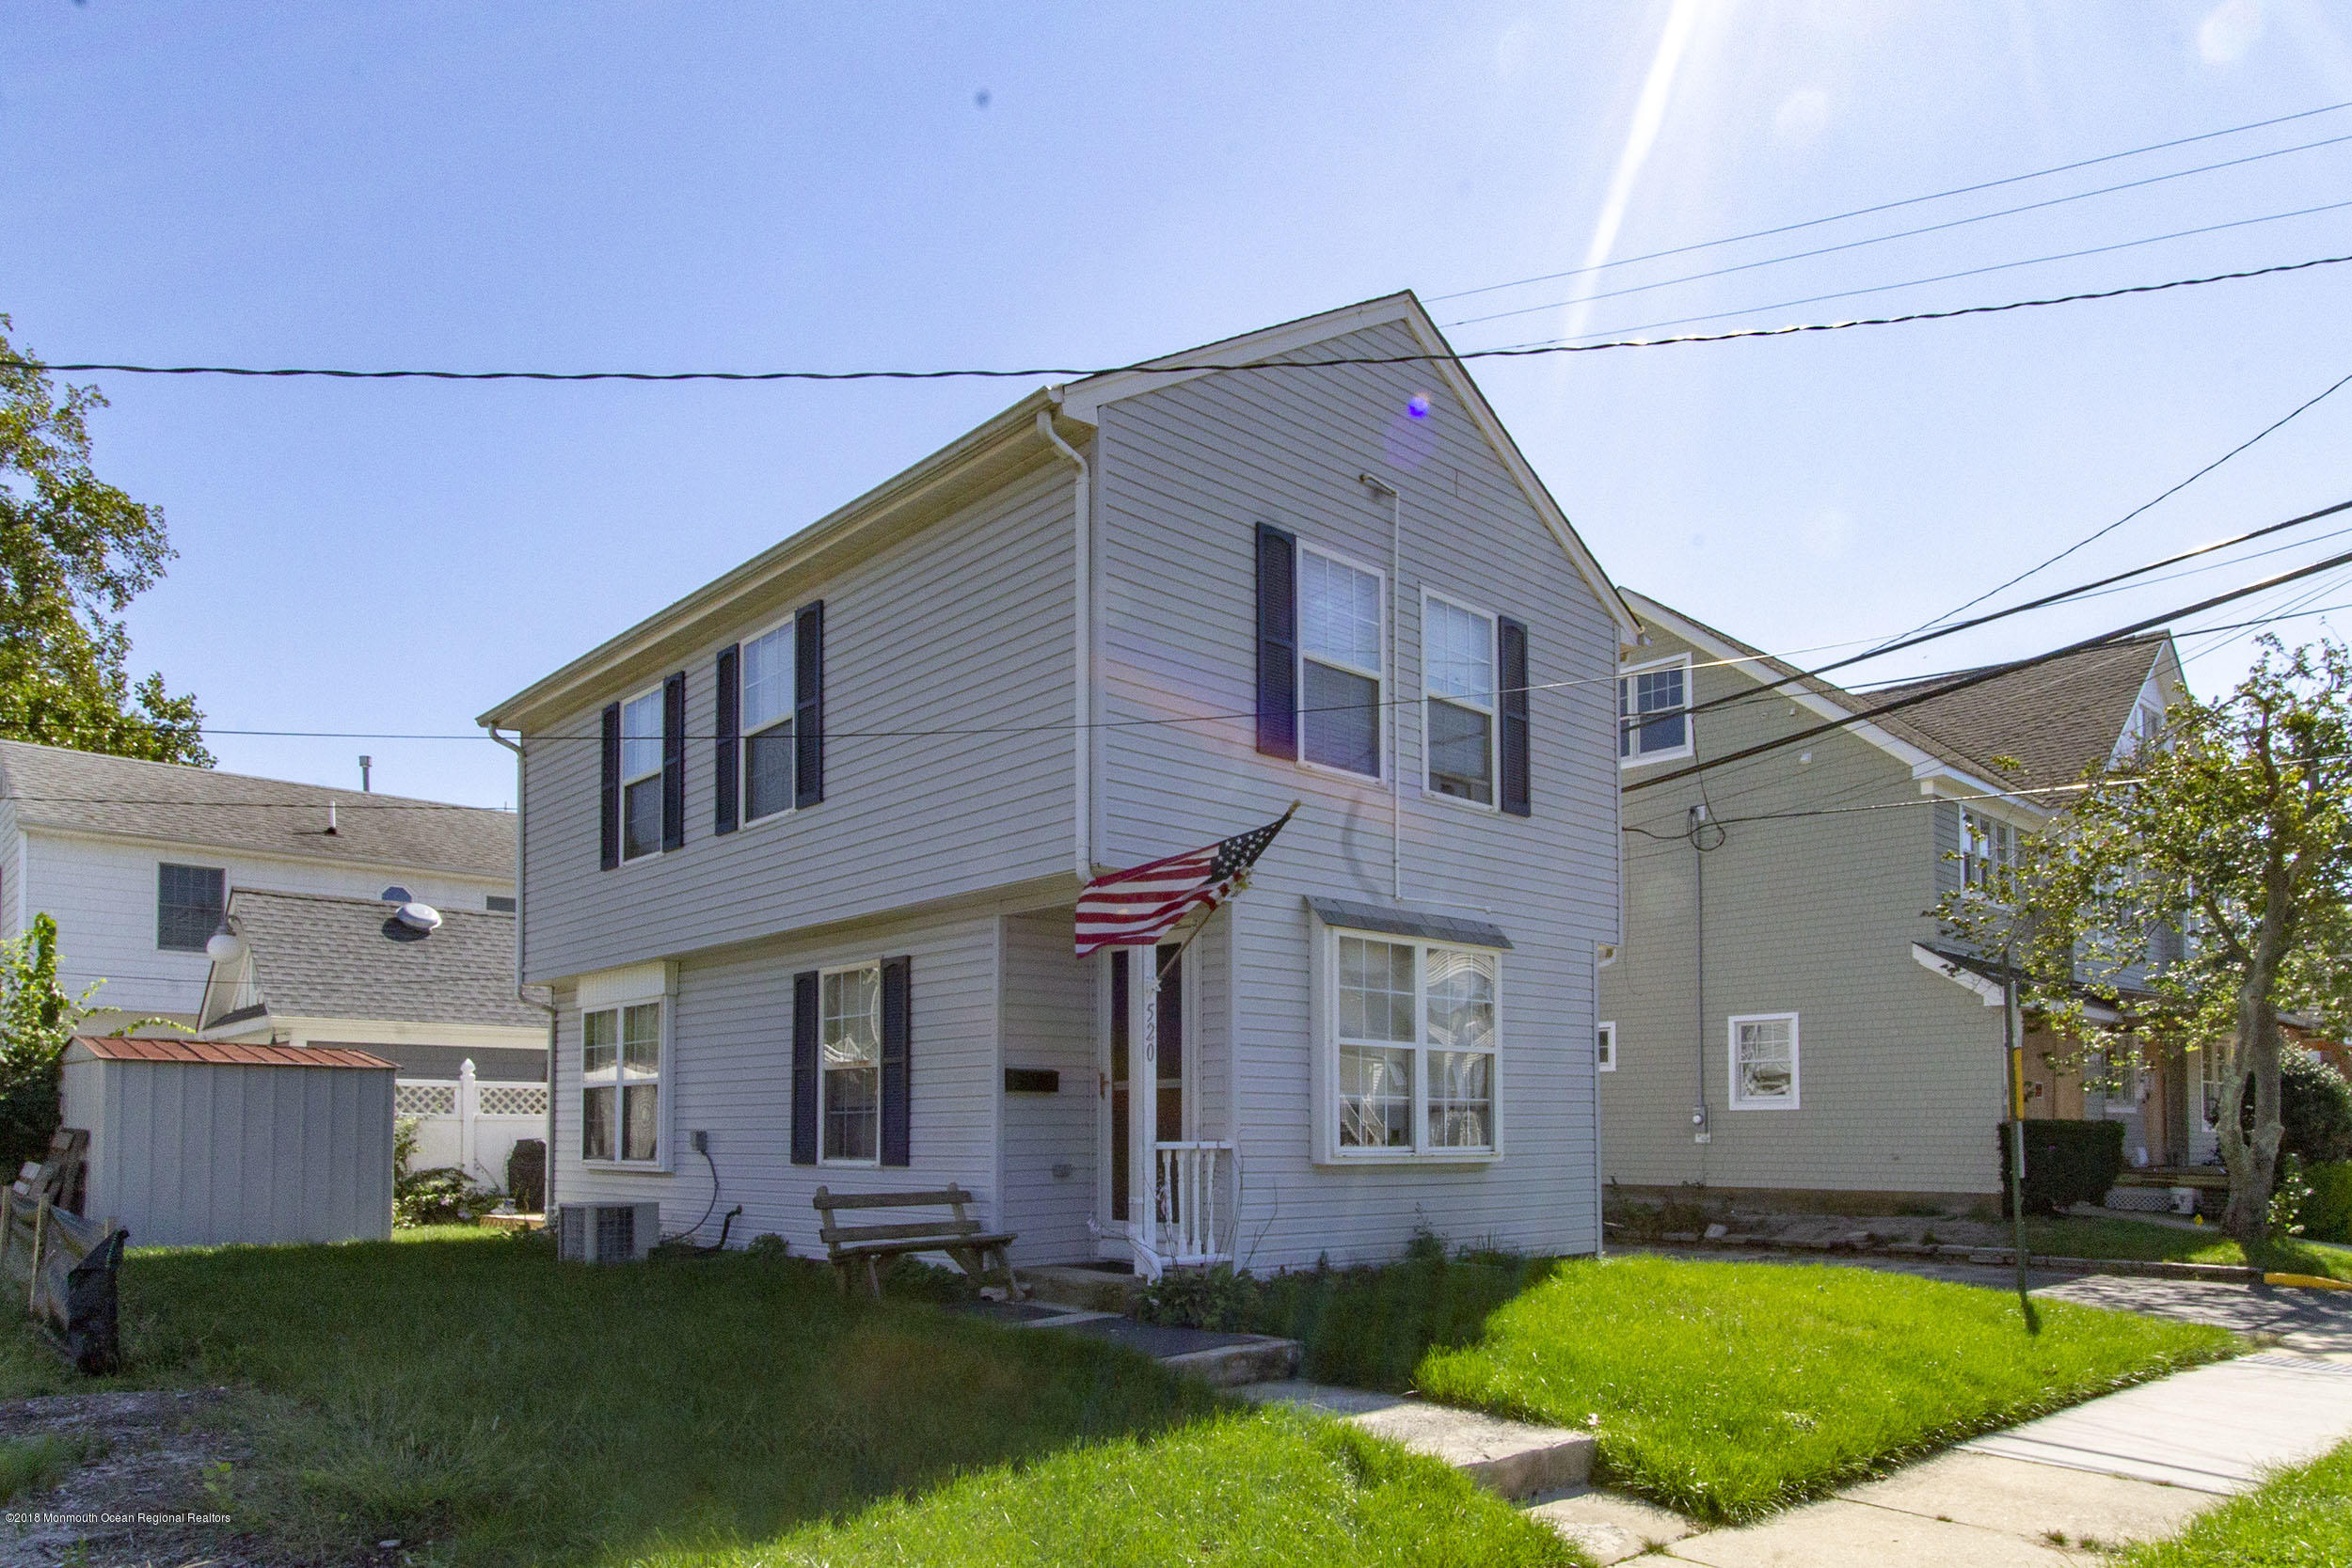 520 3rd Avenue Avon-by-the-sea NJ 07717